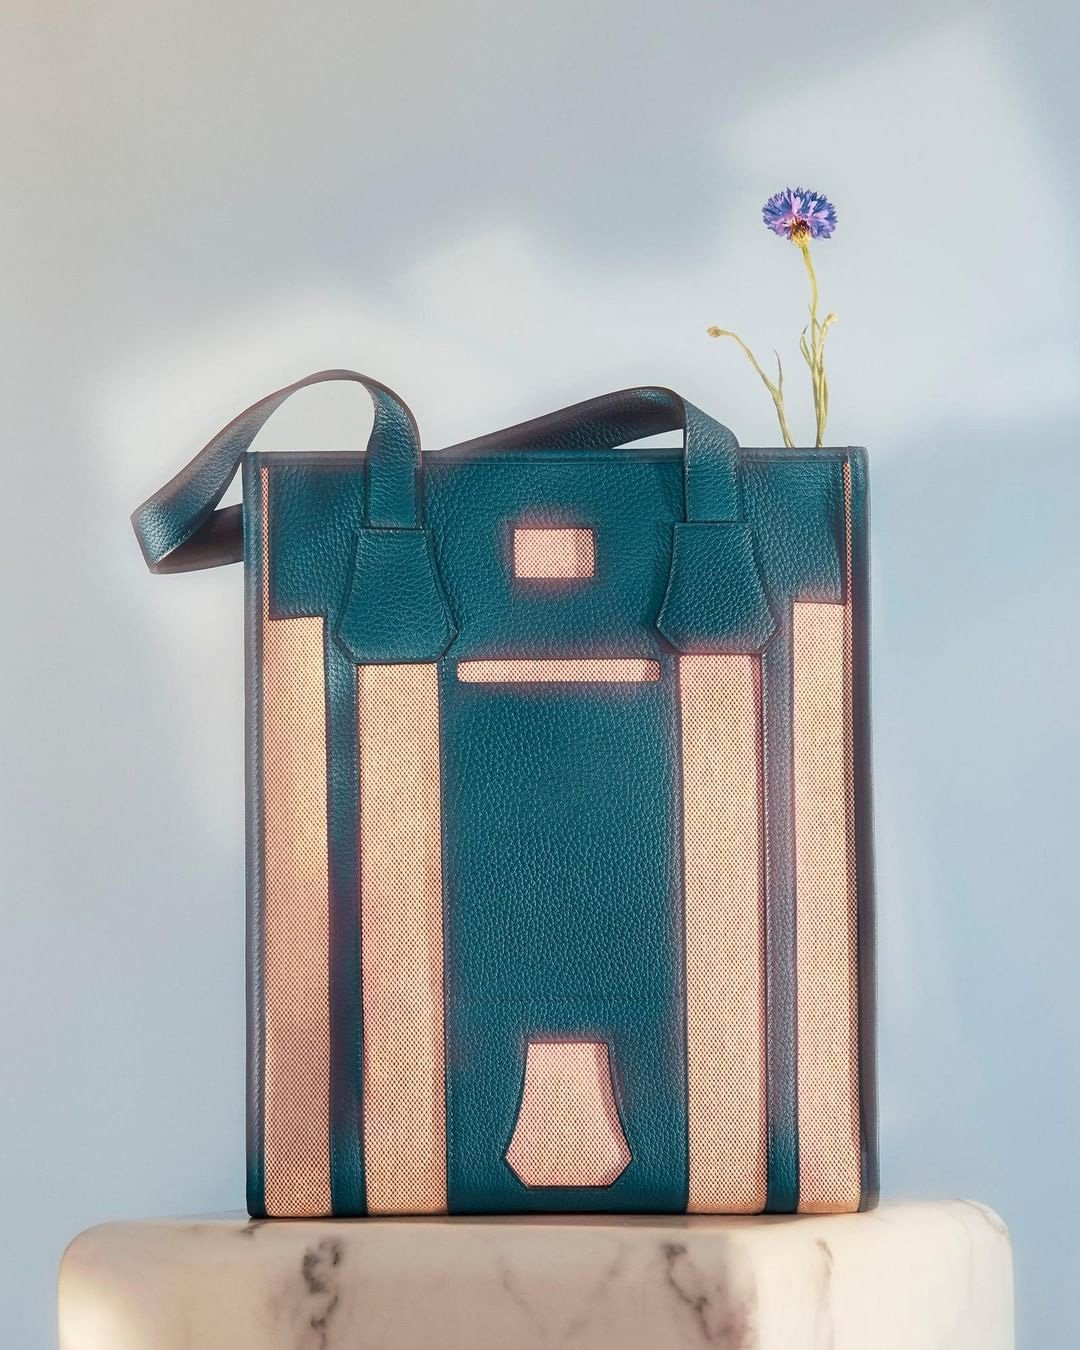 Hermes Bucolic Bag And The Handle The Hook Bag